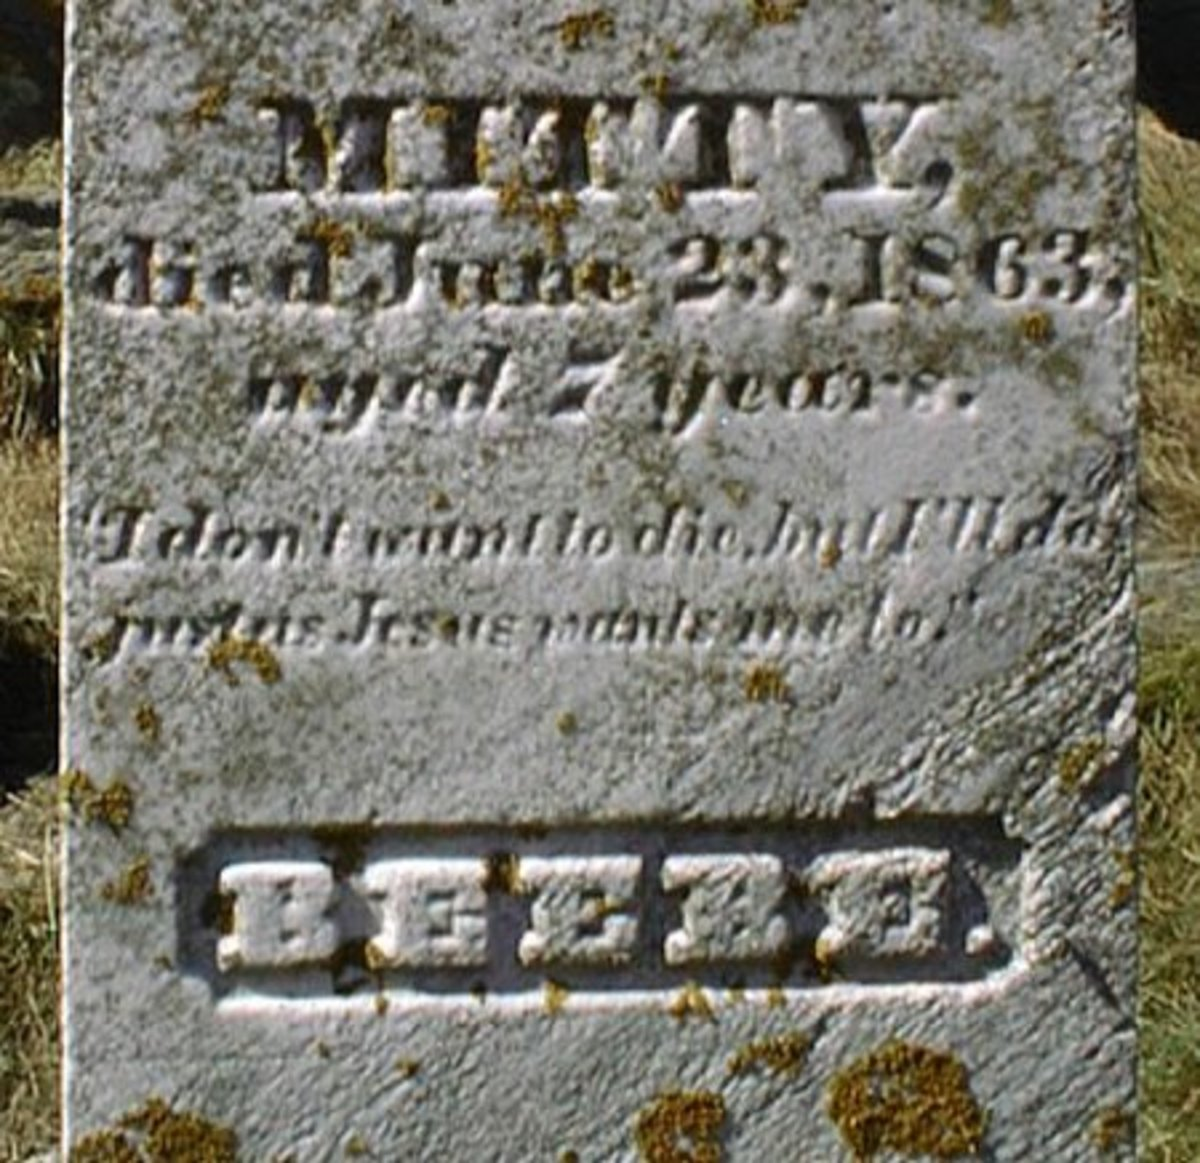 "The moving inscription by Mitty Beebe, aged 7, reads: ""I don't want to die, but I'll do just as Jesus wants me to."" This obelisk memorialized all three Beebe girls who died of either scarlet fever or diphtheria within a month of each other in May and"